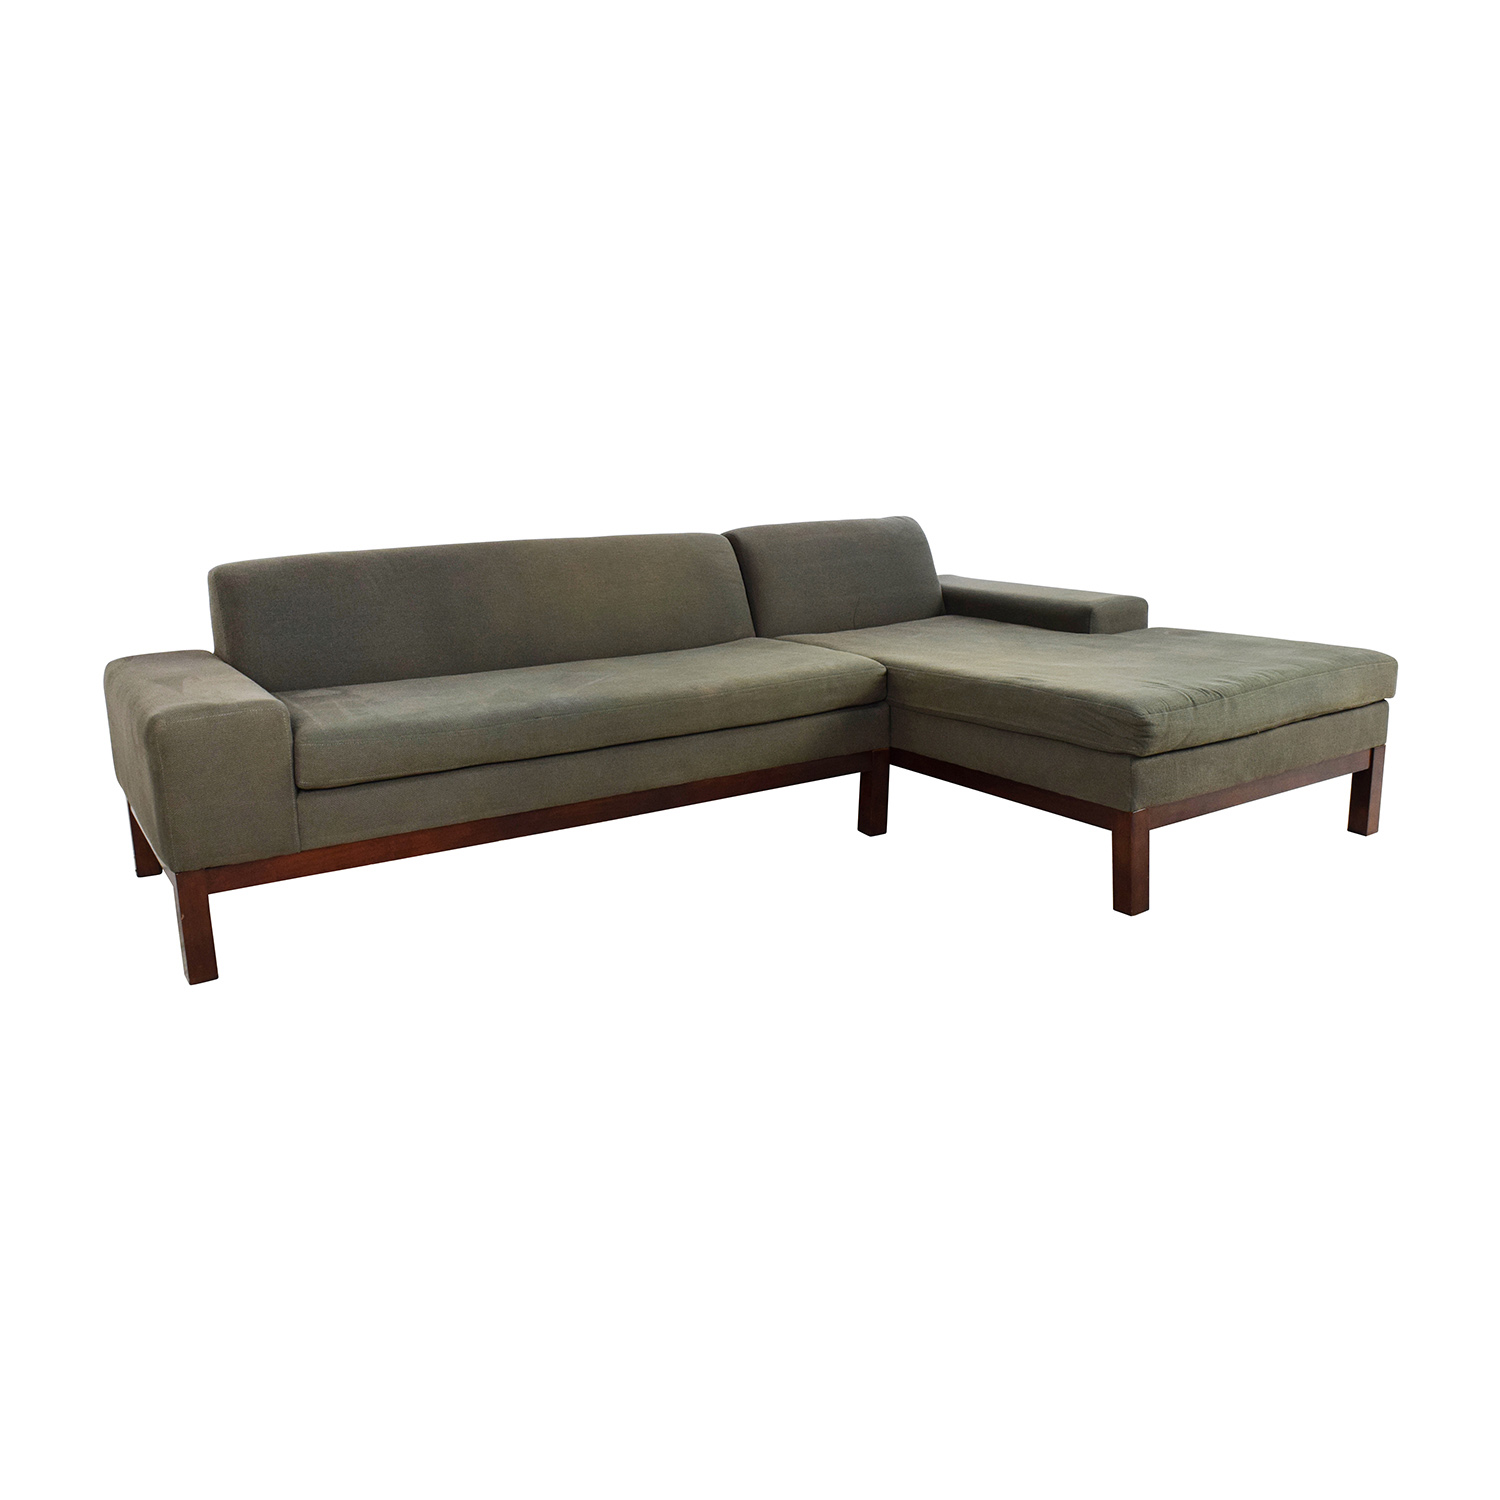 86 Off West Elm West Elm Lorimer Green Sectional Sofas